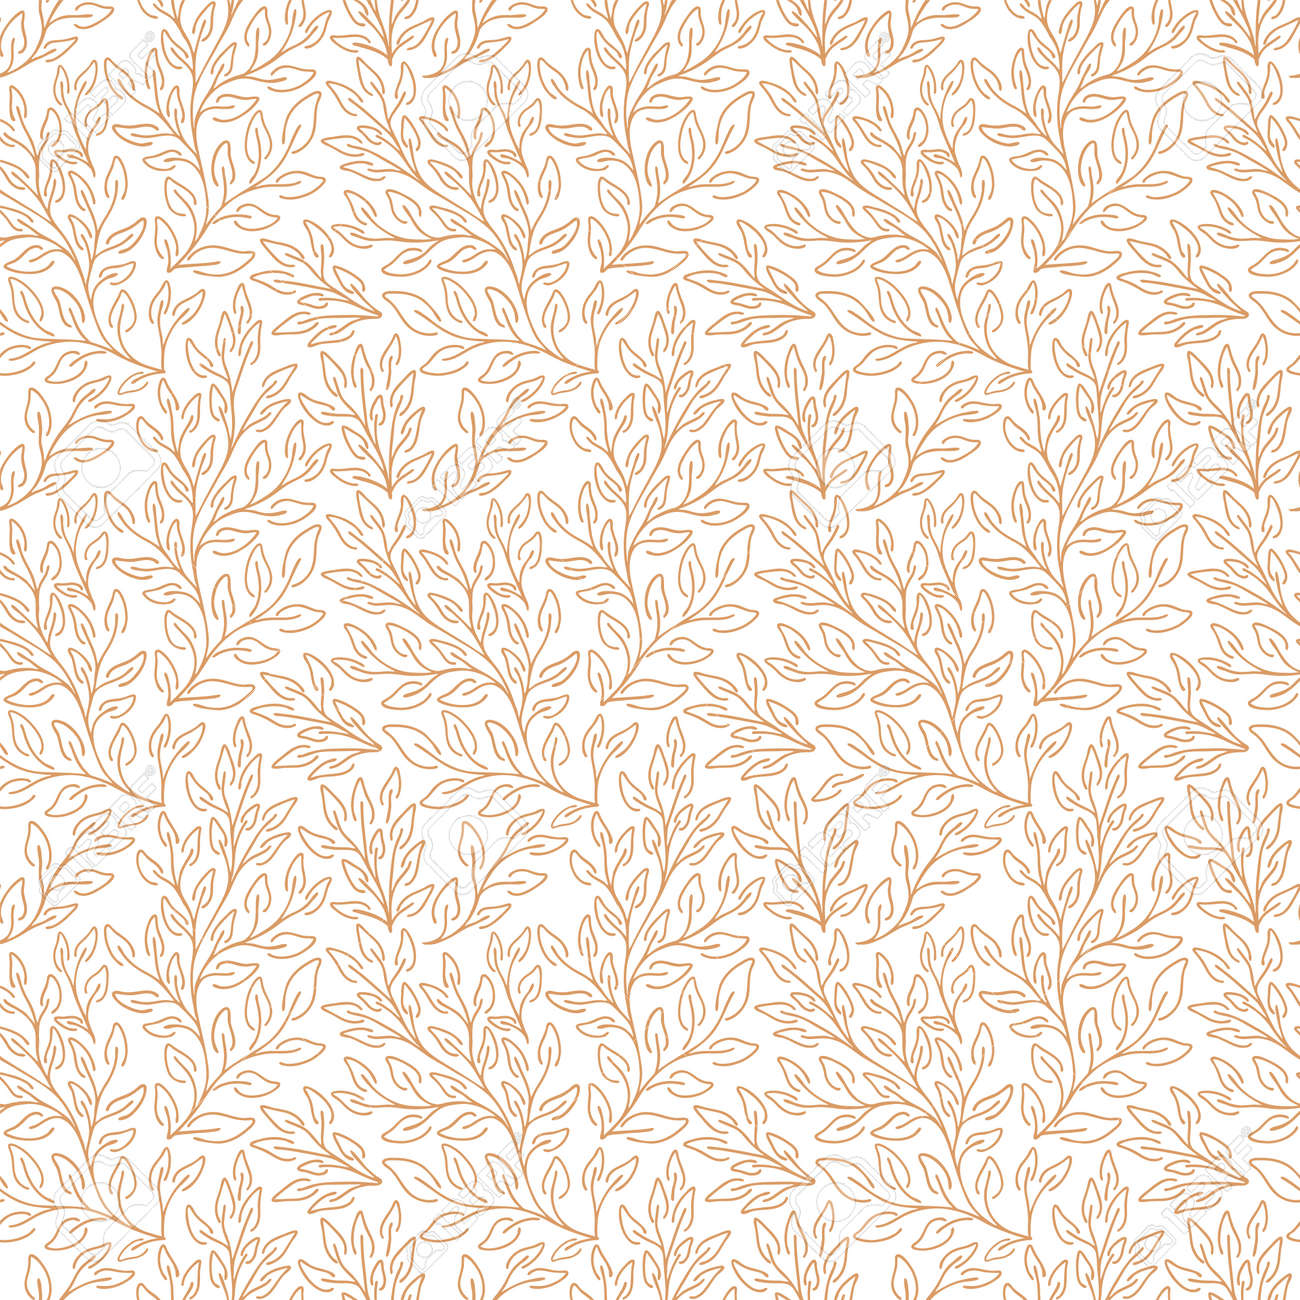 Vector natural seamless pattern. Contour floral pattern. Monochrome background with leaves - 168555741